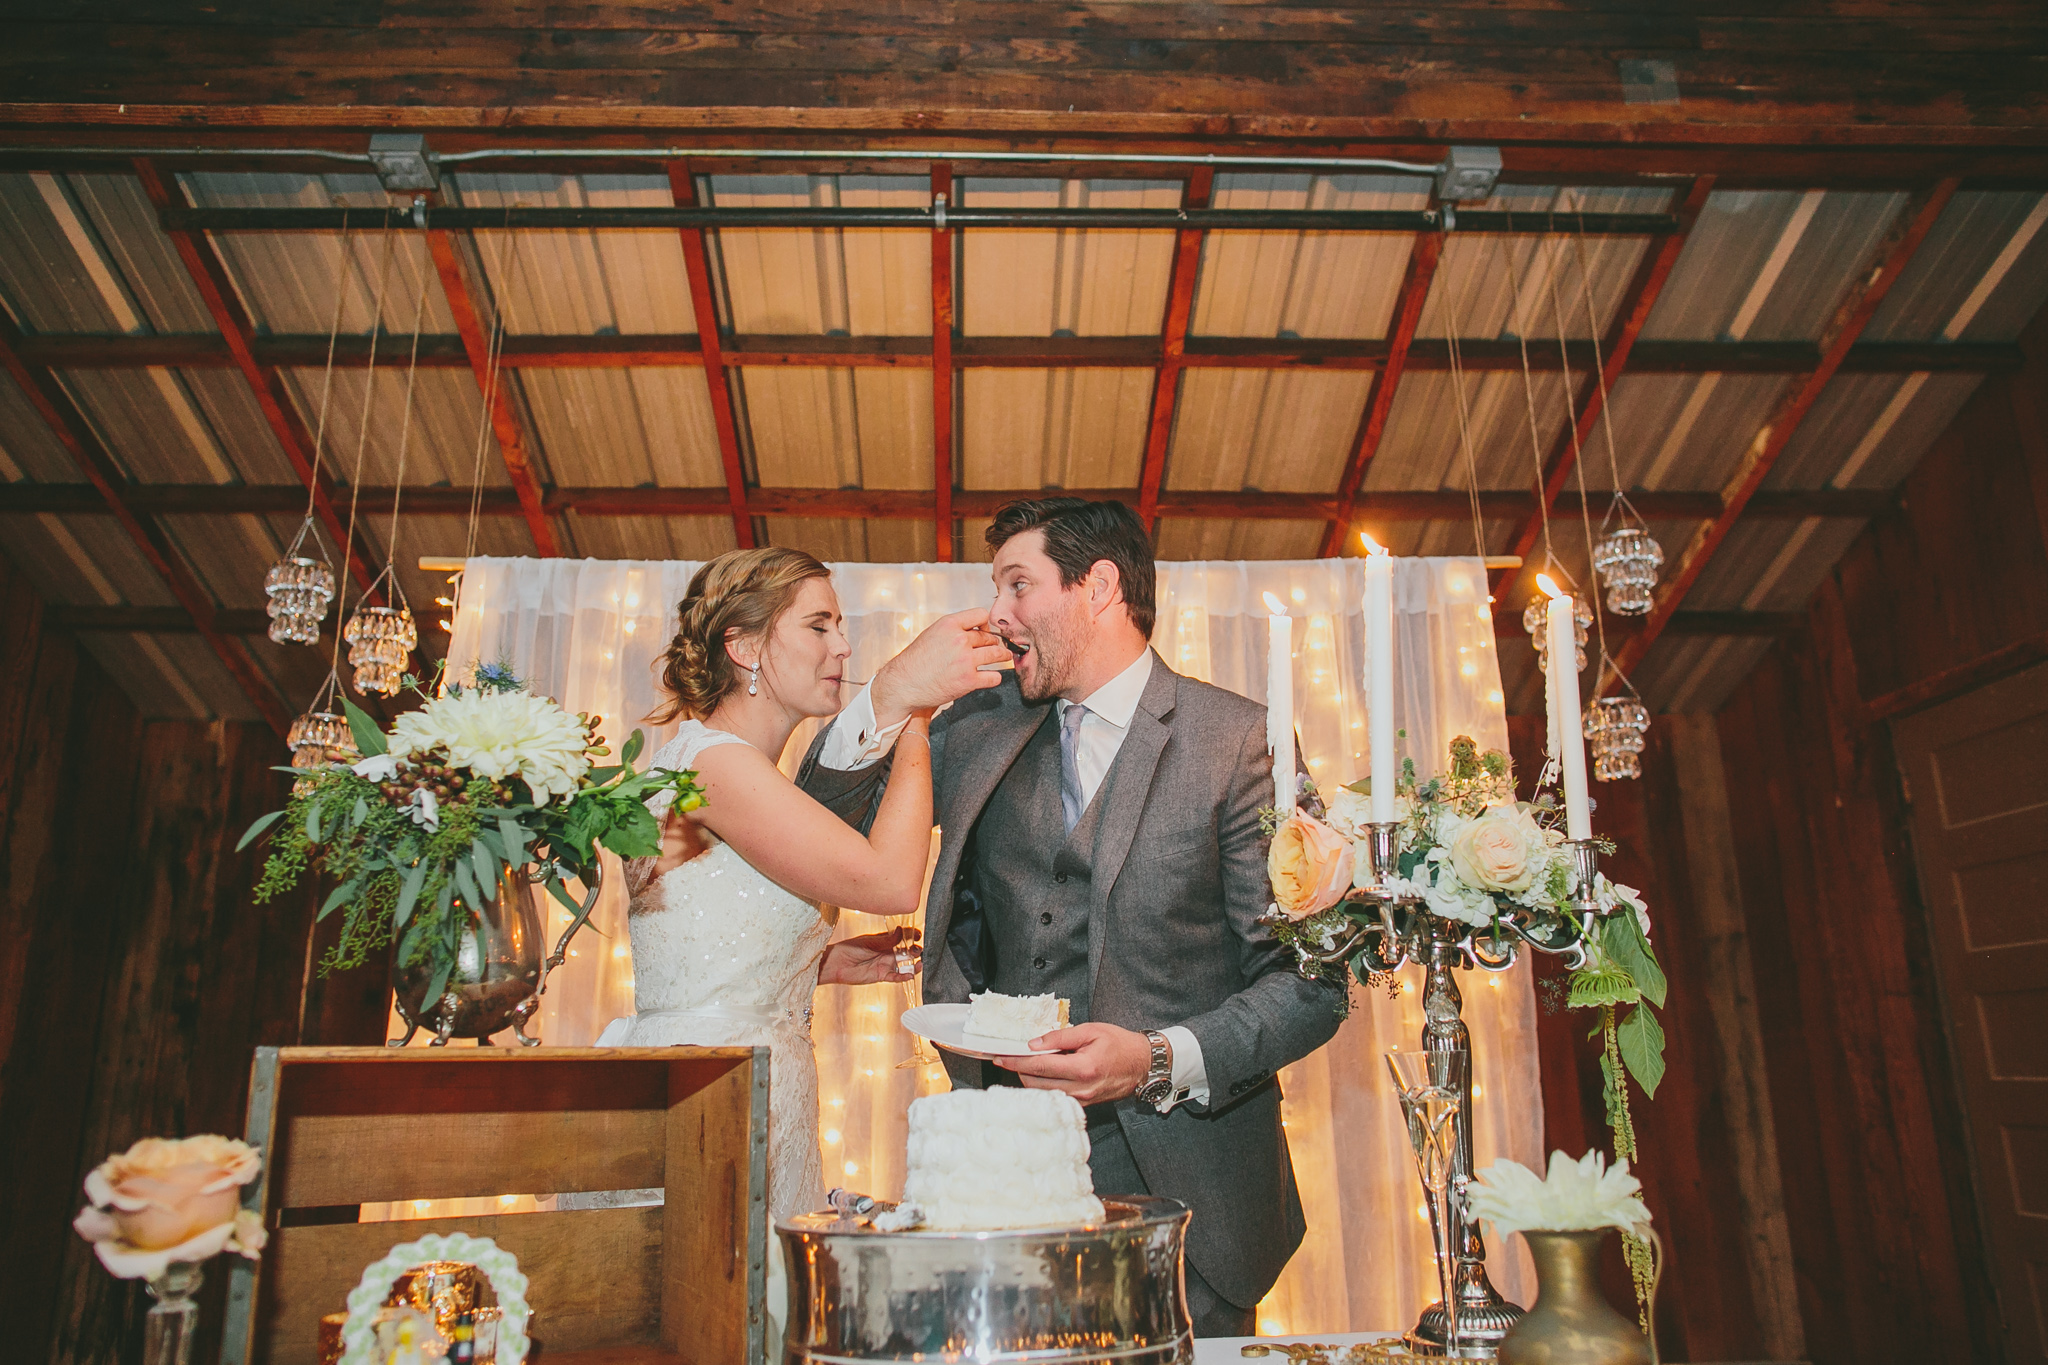 whitney+parker-WEB_BLOG-158